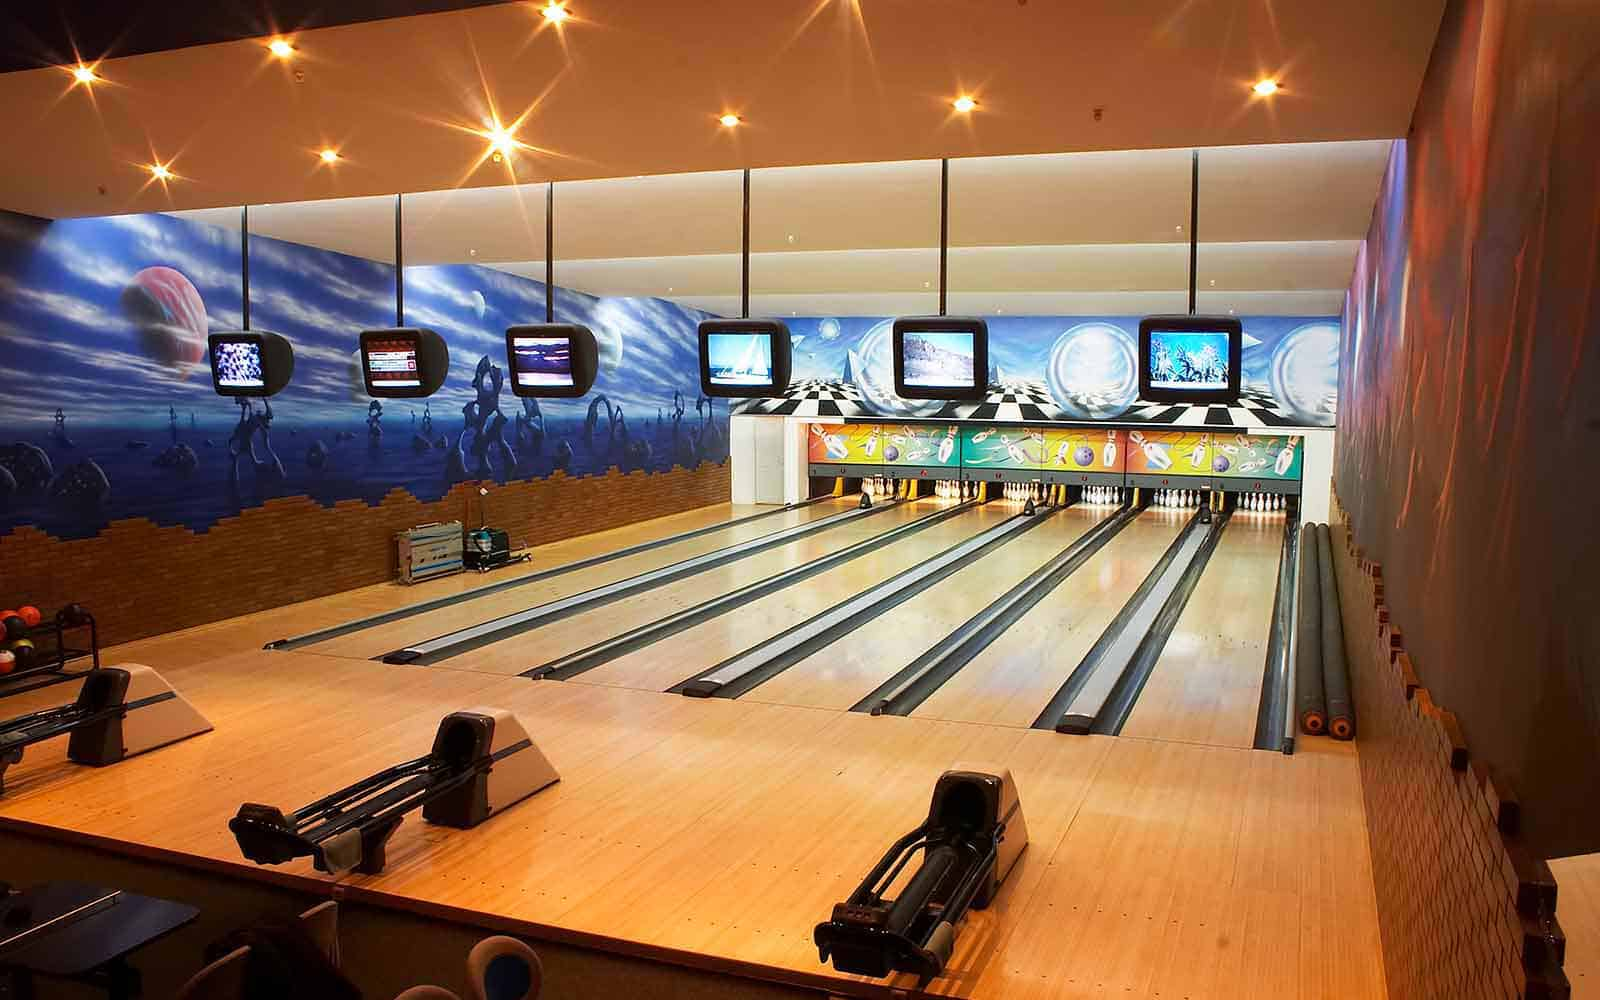 Best Bowling Alley Pos Software Top 3 Systems Reviewed